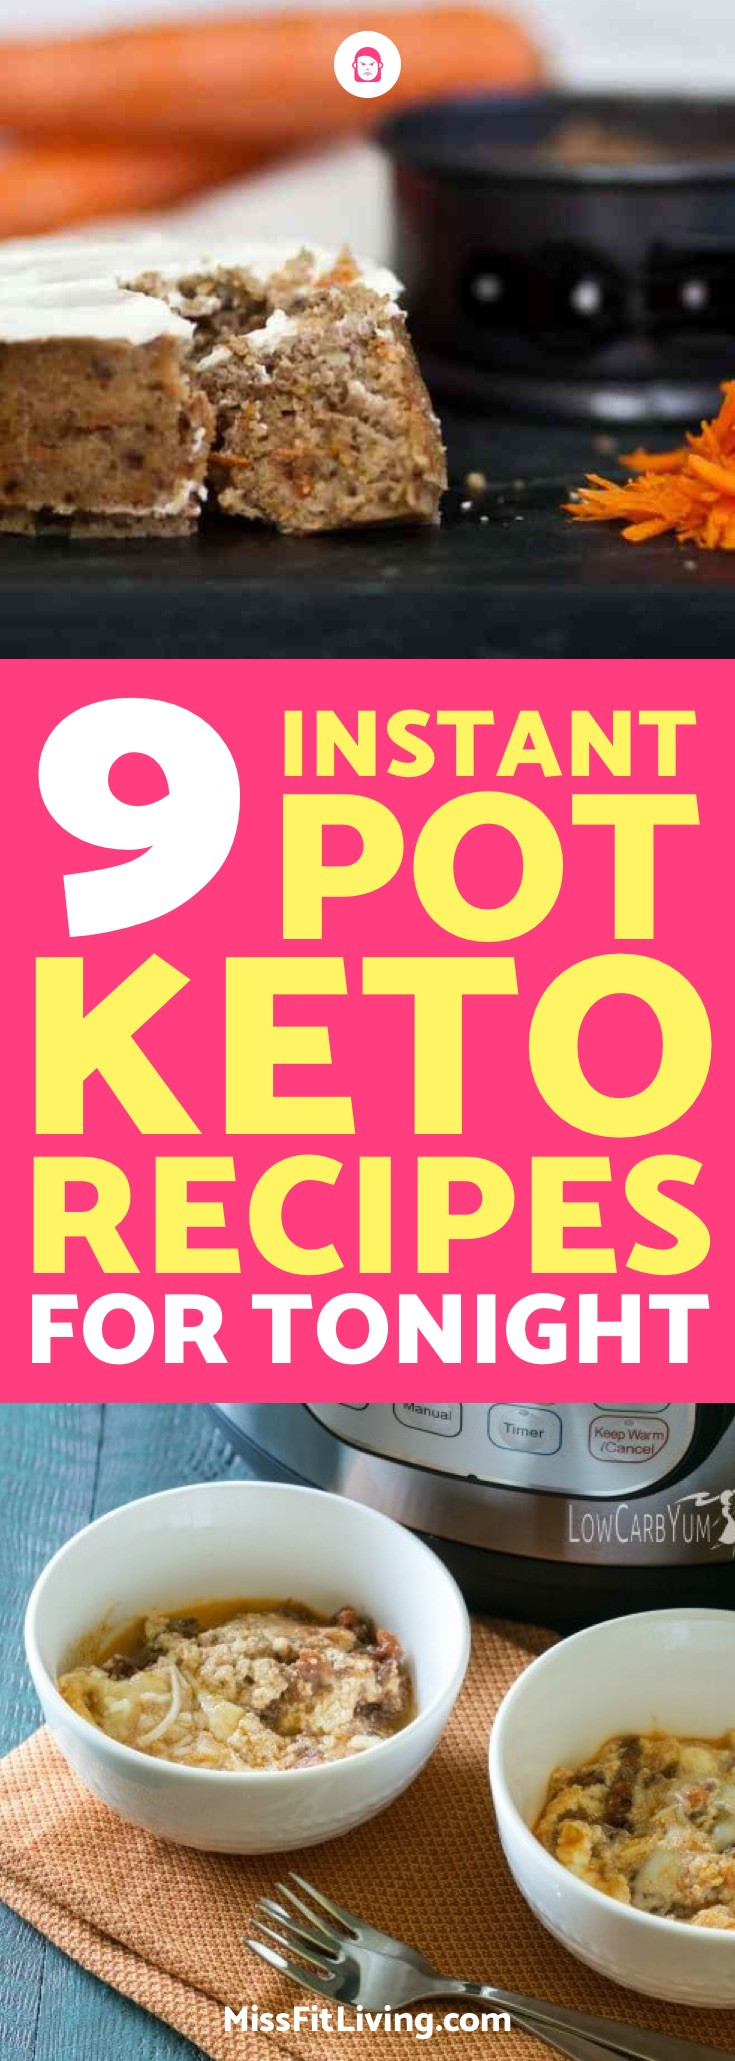 Instant Pot Keto Recipes  9 Instant Pot Keto Recipes To Try Tonight While Doing the